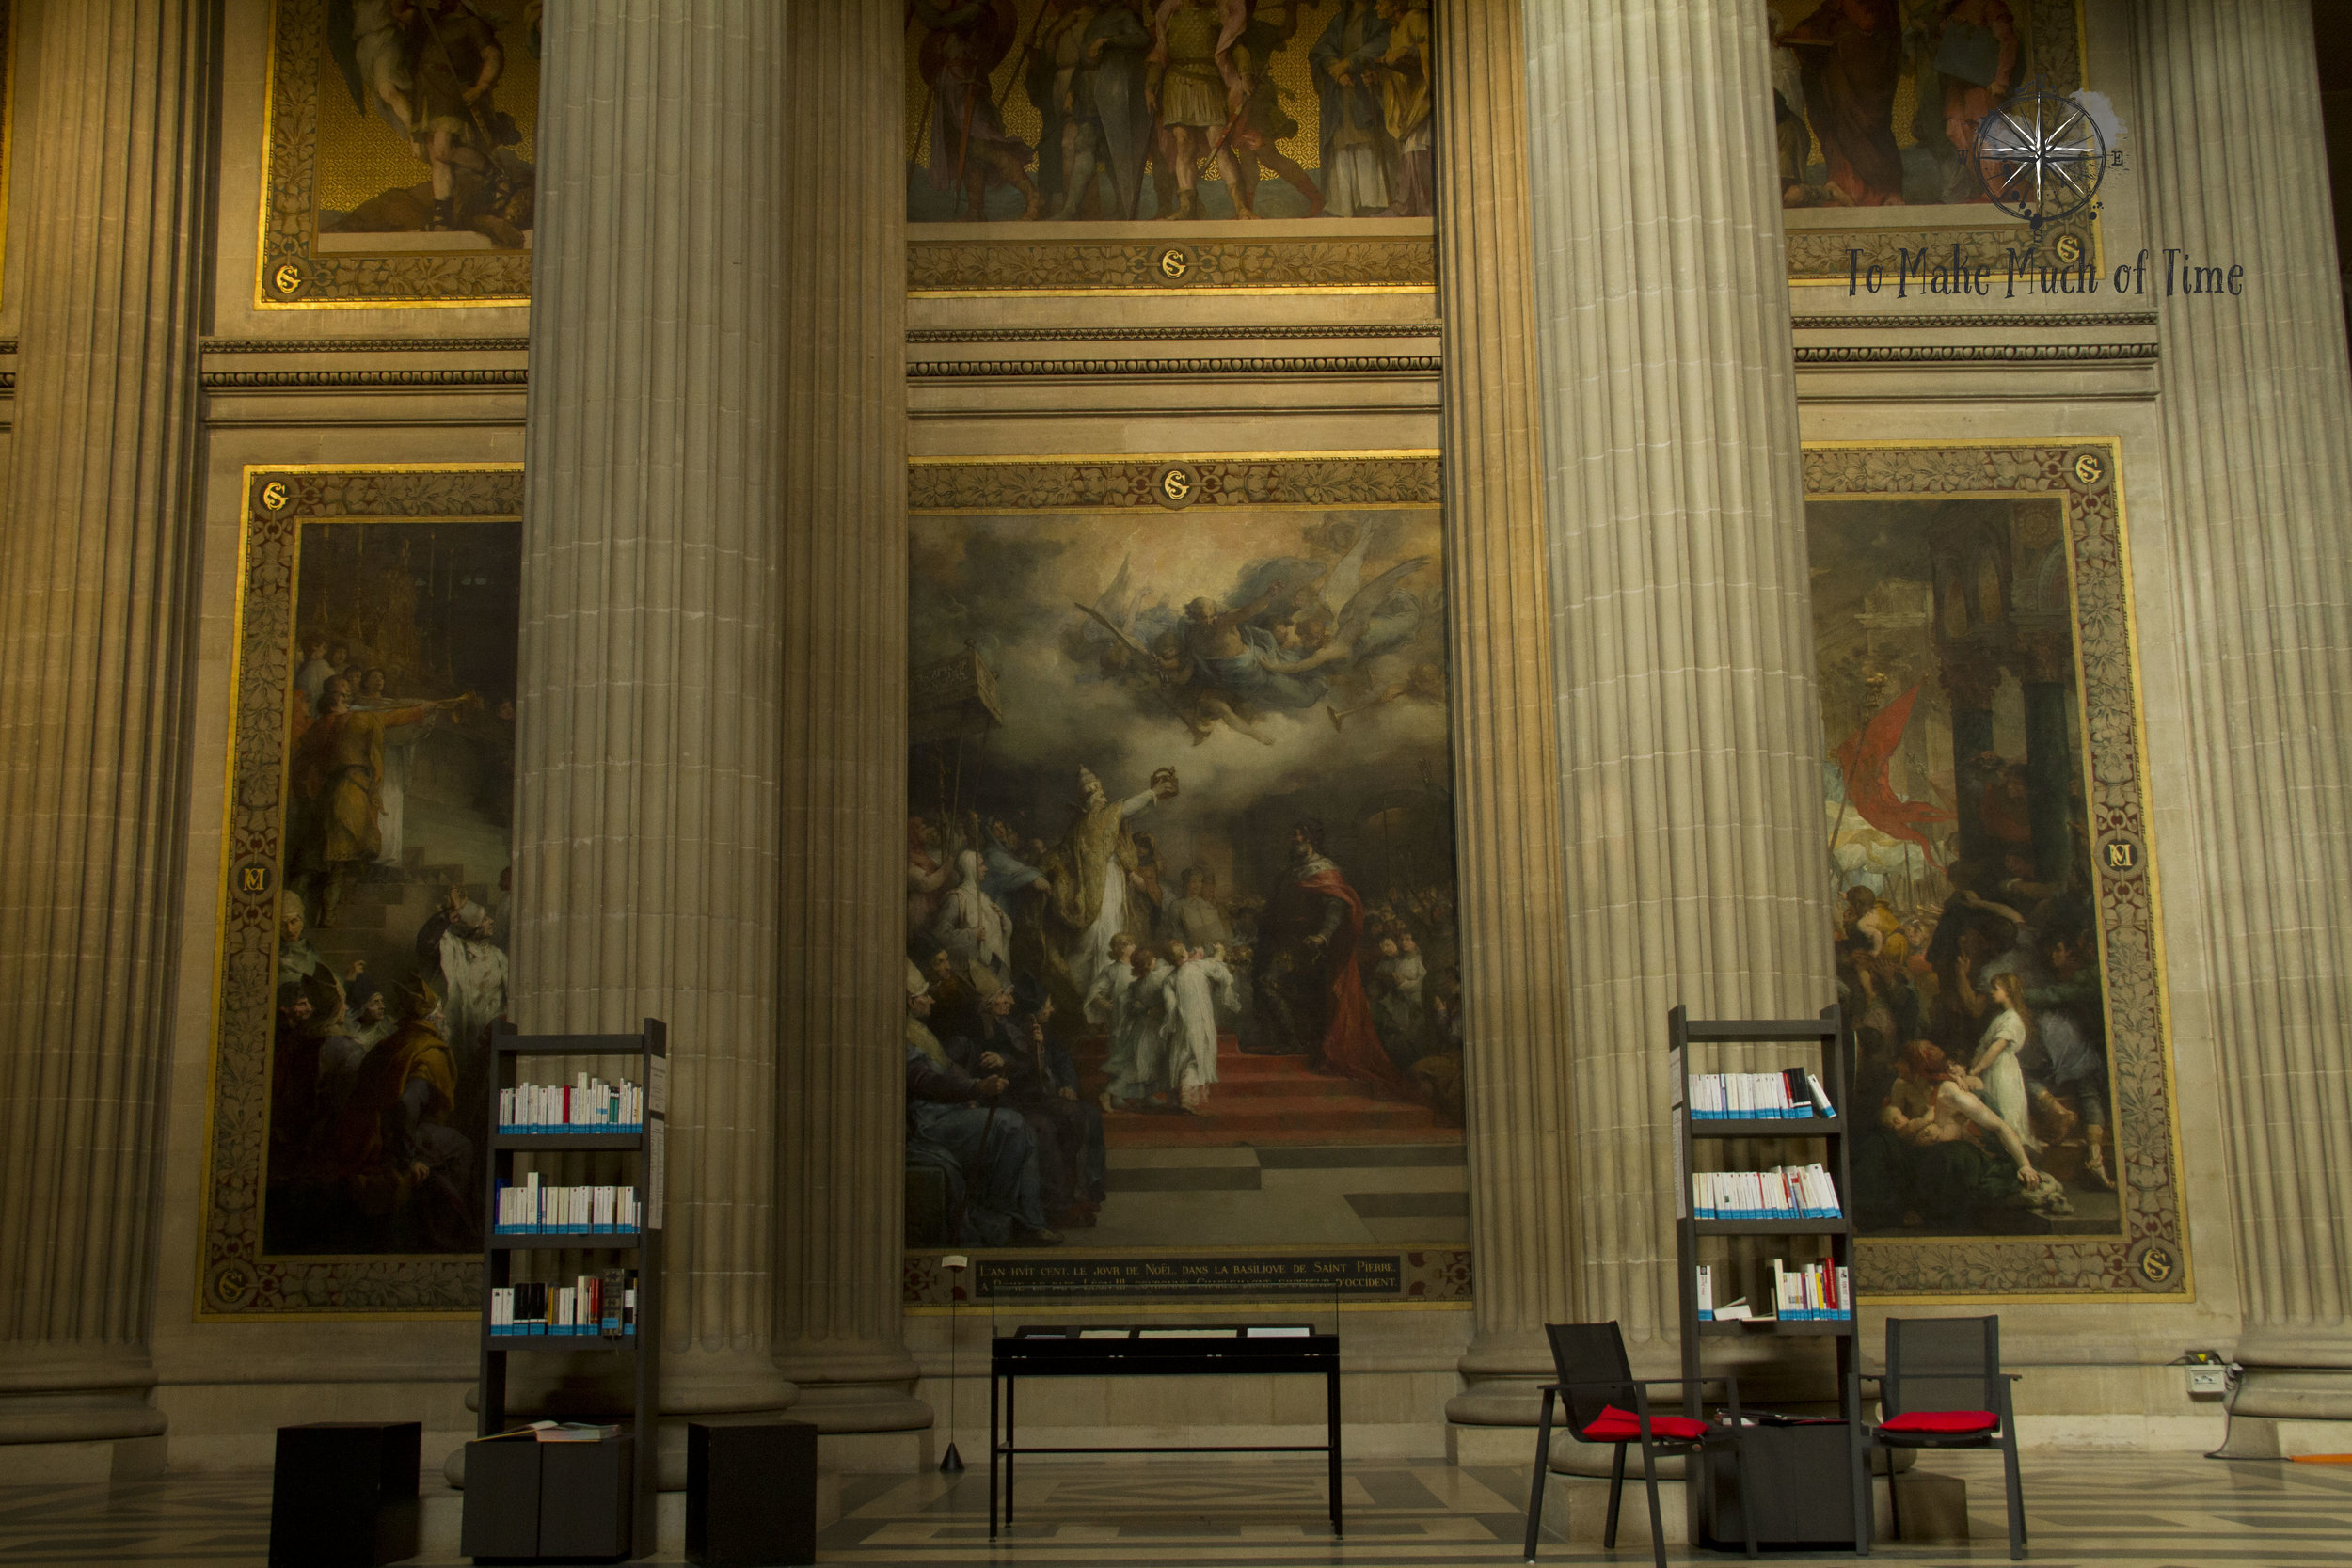 Books written by those entombed below can be found in this small library located within the Pantheon.